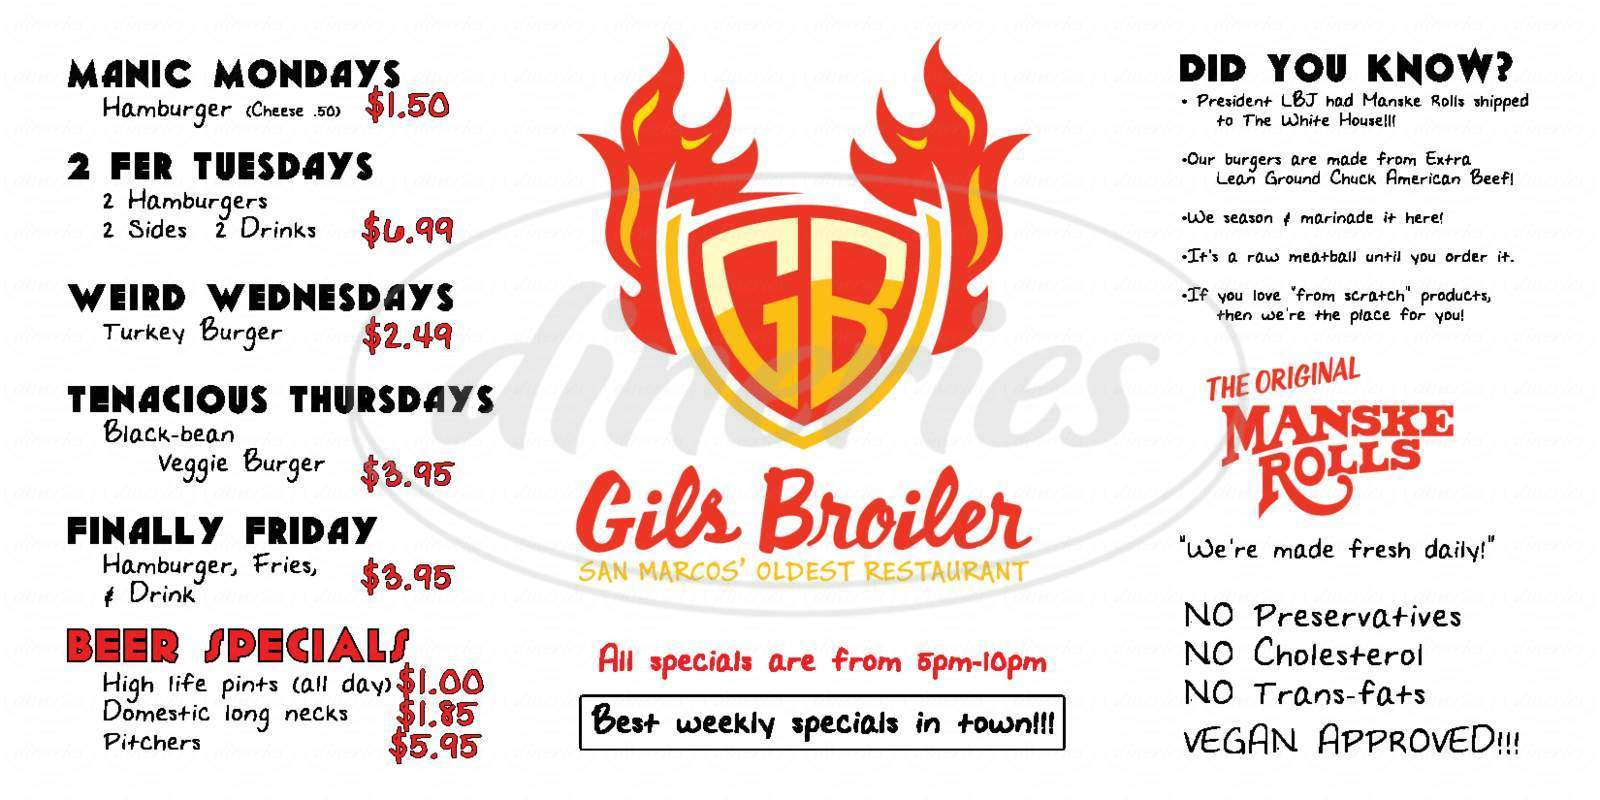 Big menu for Gil's Broiler & Manske Roll Bakery, San Marcos